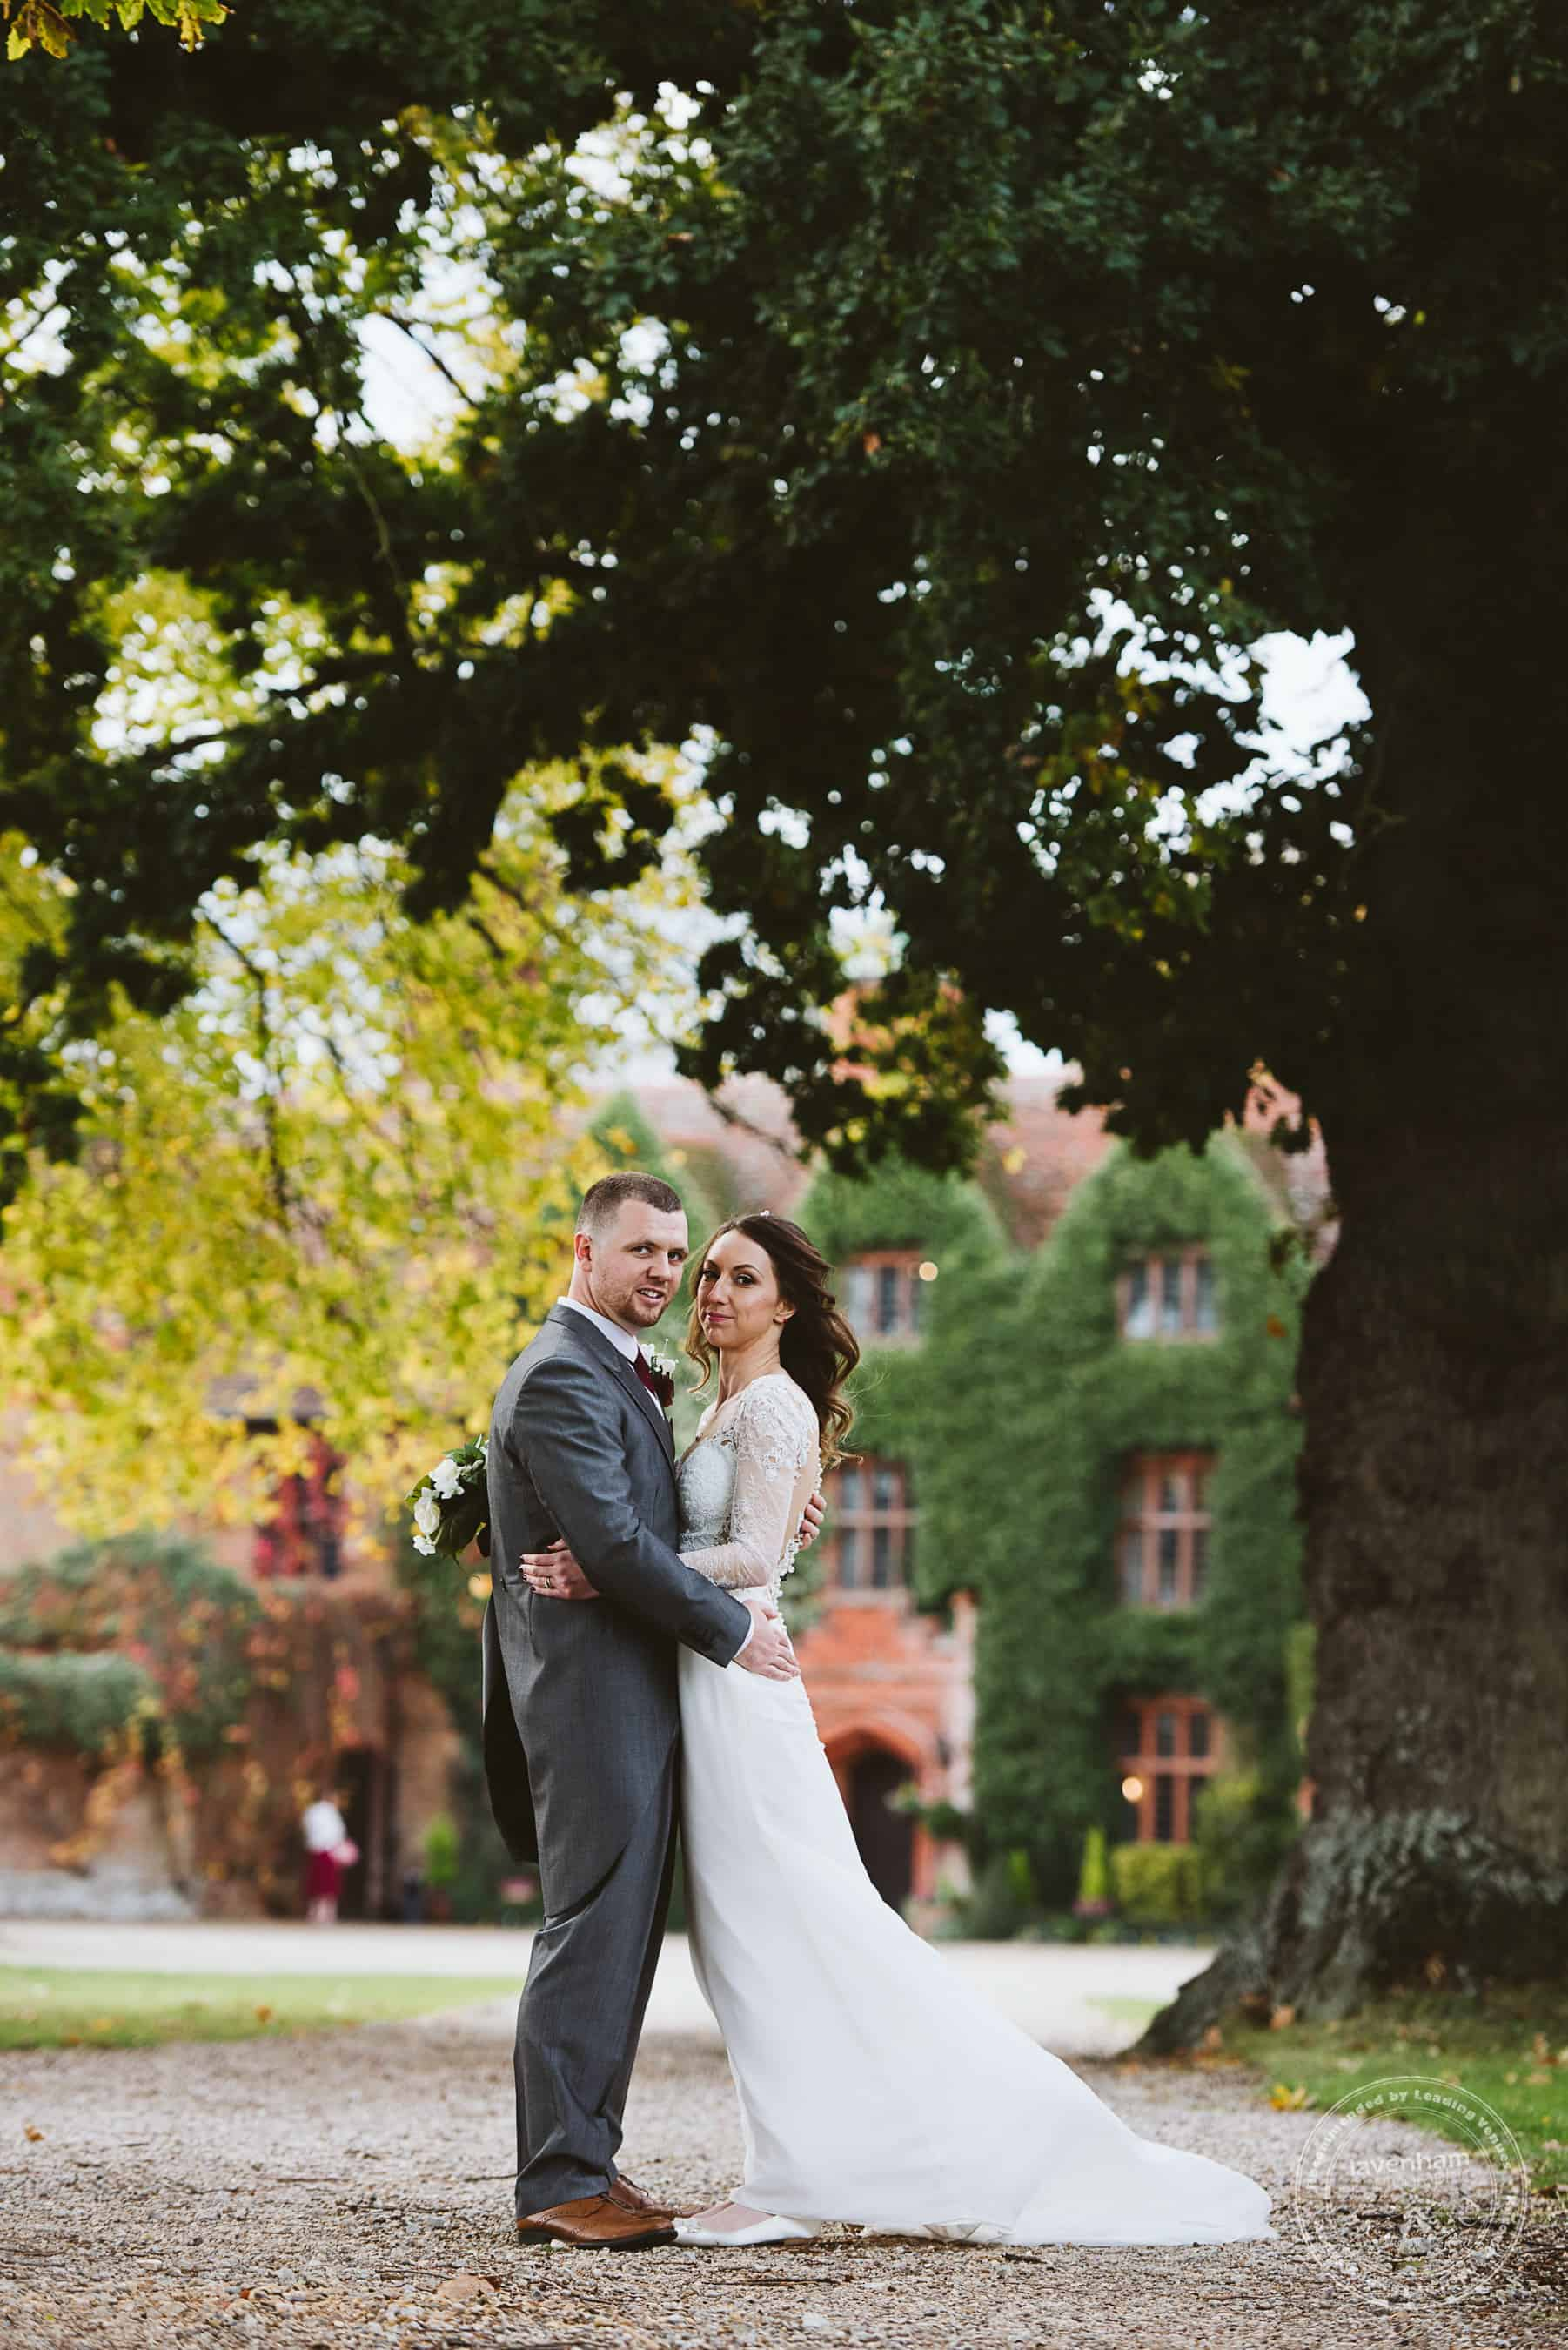 041118 Woodhall Manor Wedding Photography by Lavenham Photographic 098